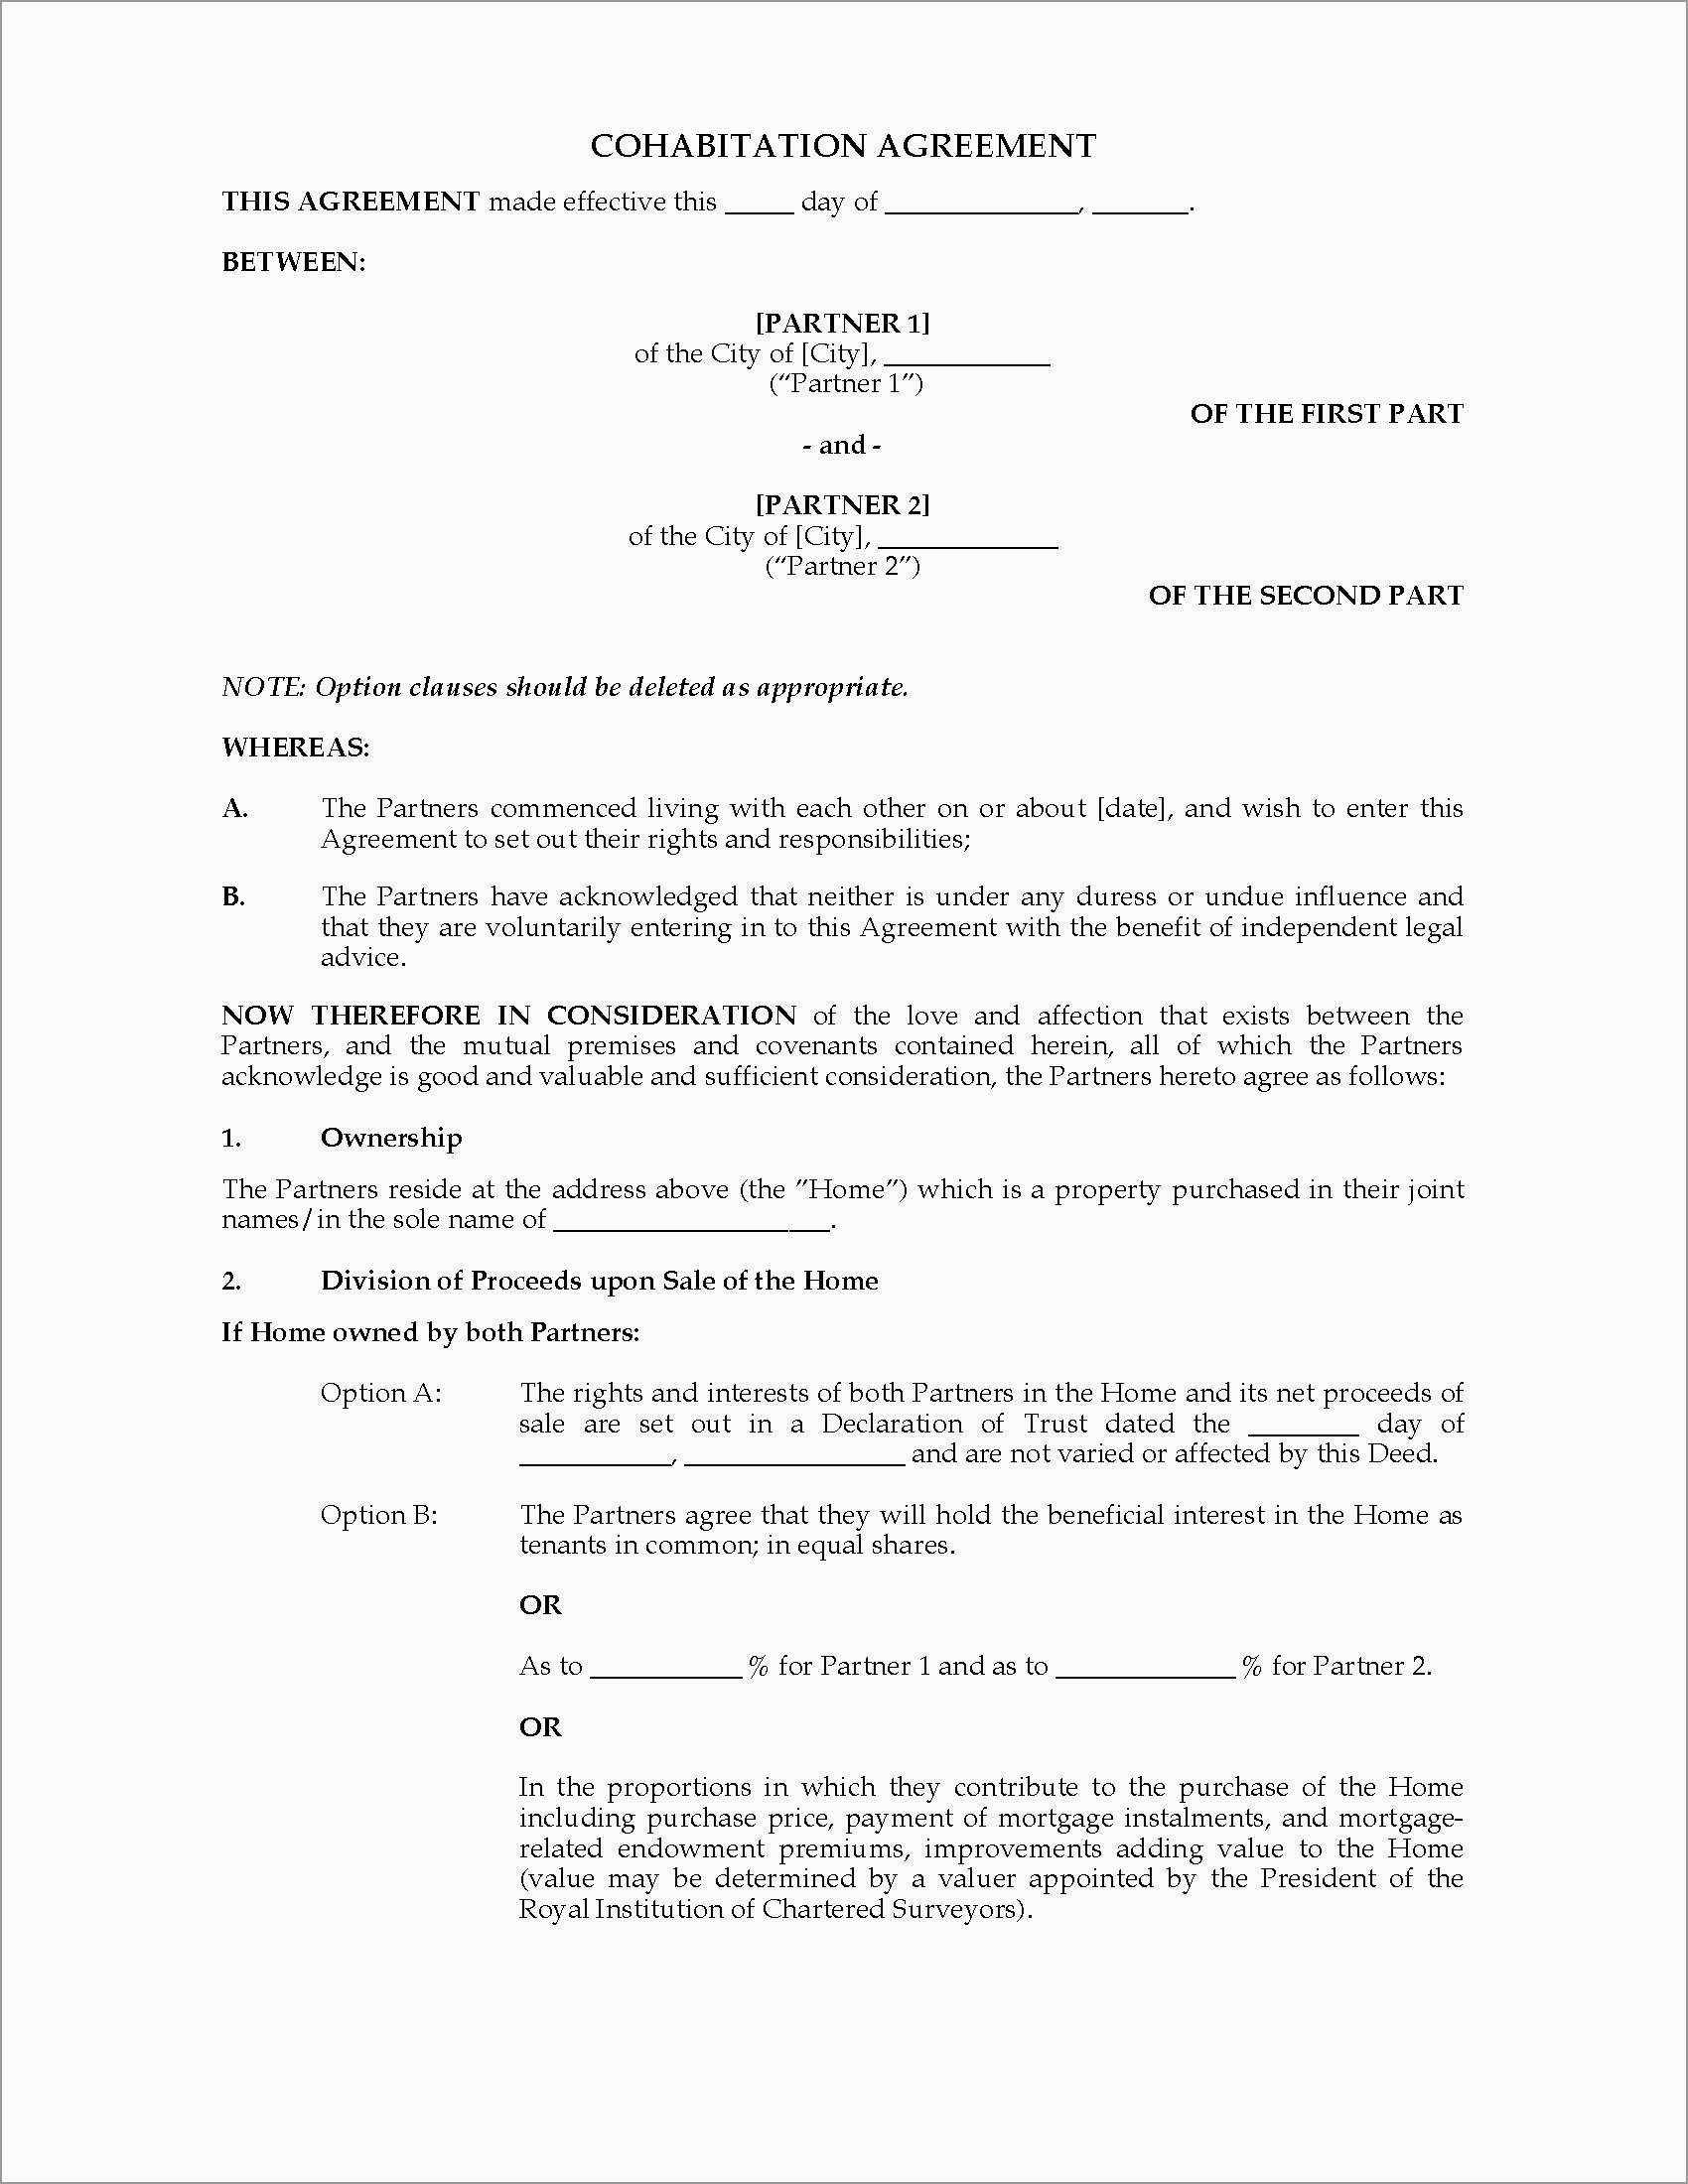 Living Together Agreement Template Free Amazing Agreement Template Throughout Free Cohabitation Agreement Template